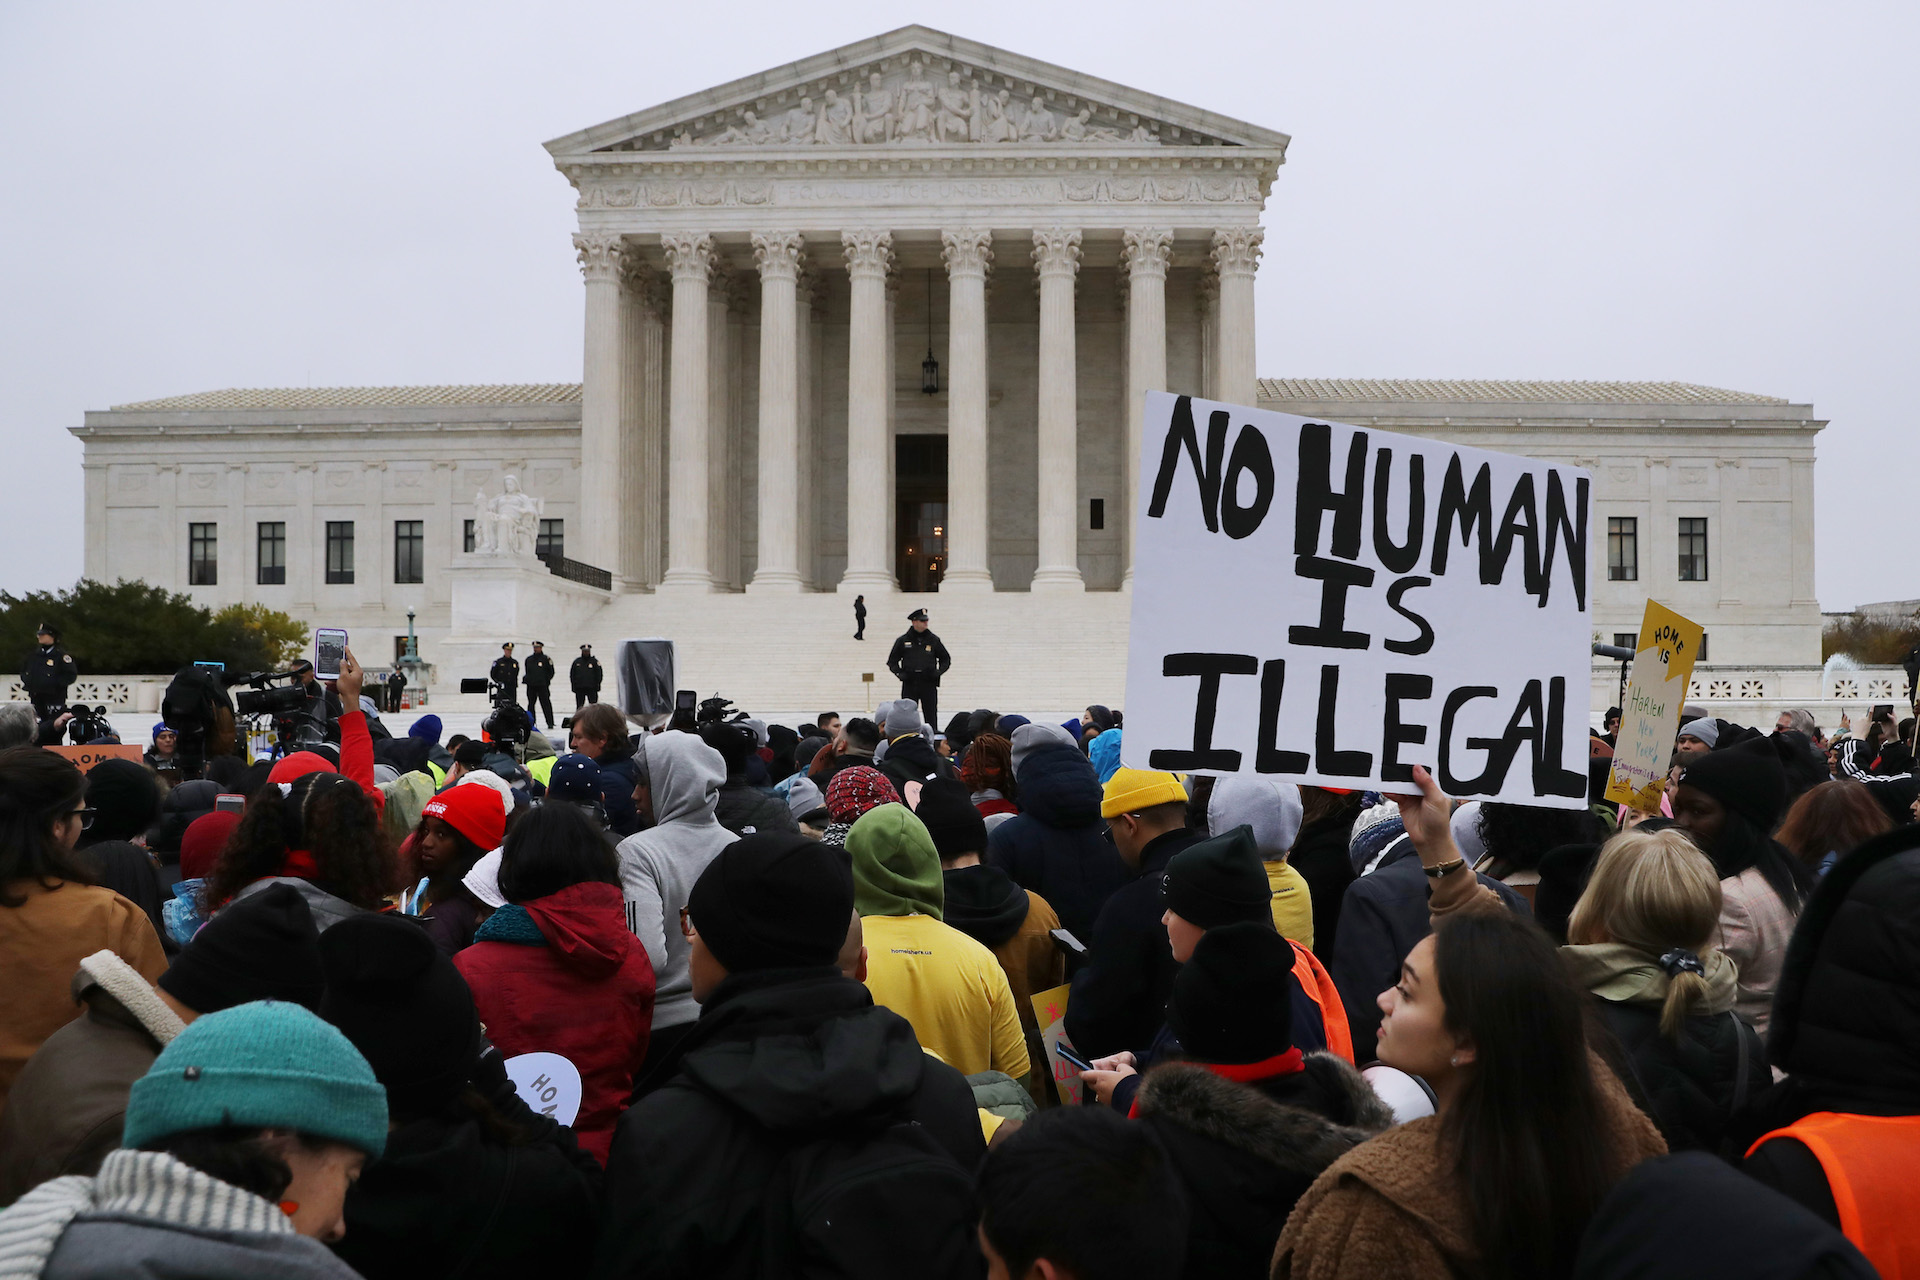 , Conservatives on the Supreme Court Sound Like They're OK With Ending DACA, Saubio Making Wealth